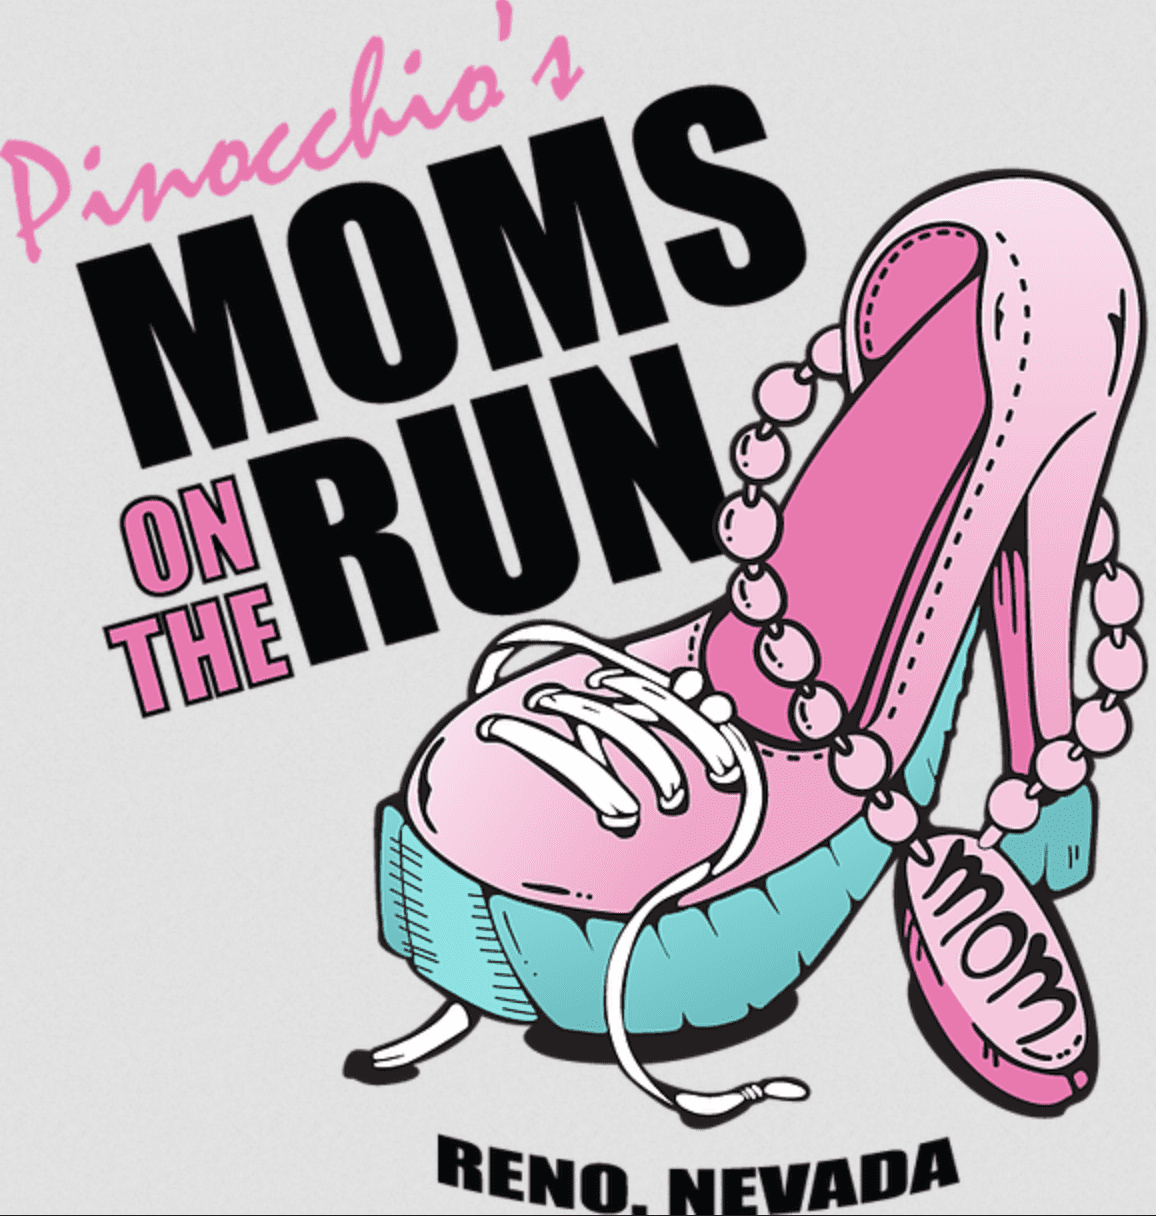 20th annual Pinocchio's Moms on the Run